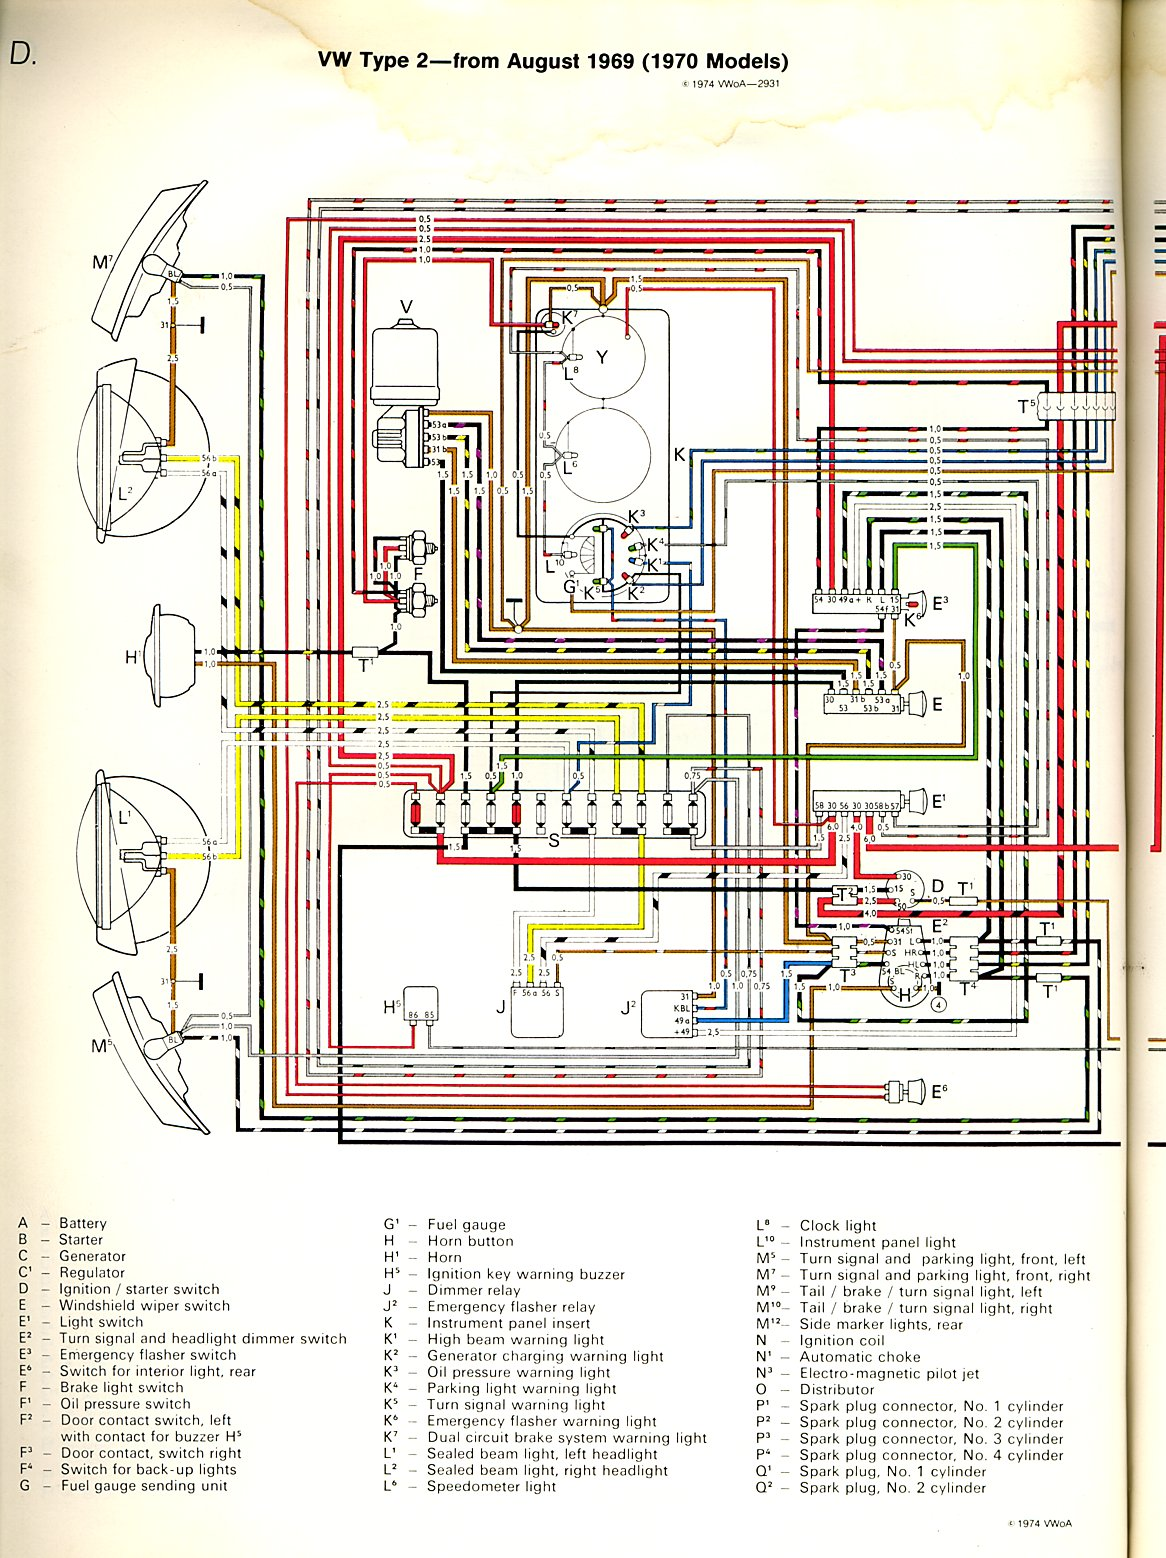 baybus_70a thesamba com type 2 wiring diagrams 1978 Camaro at bayanpartner.co